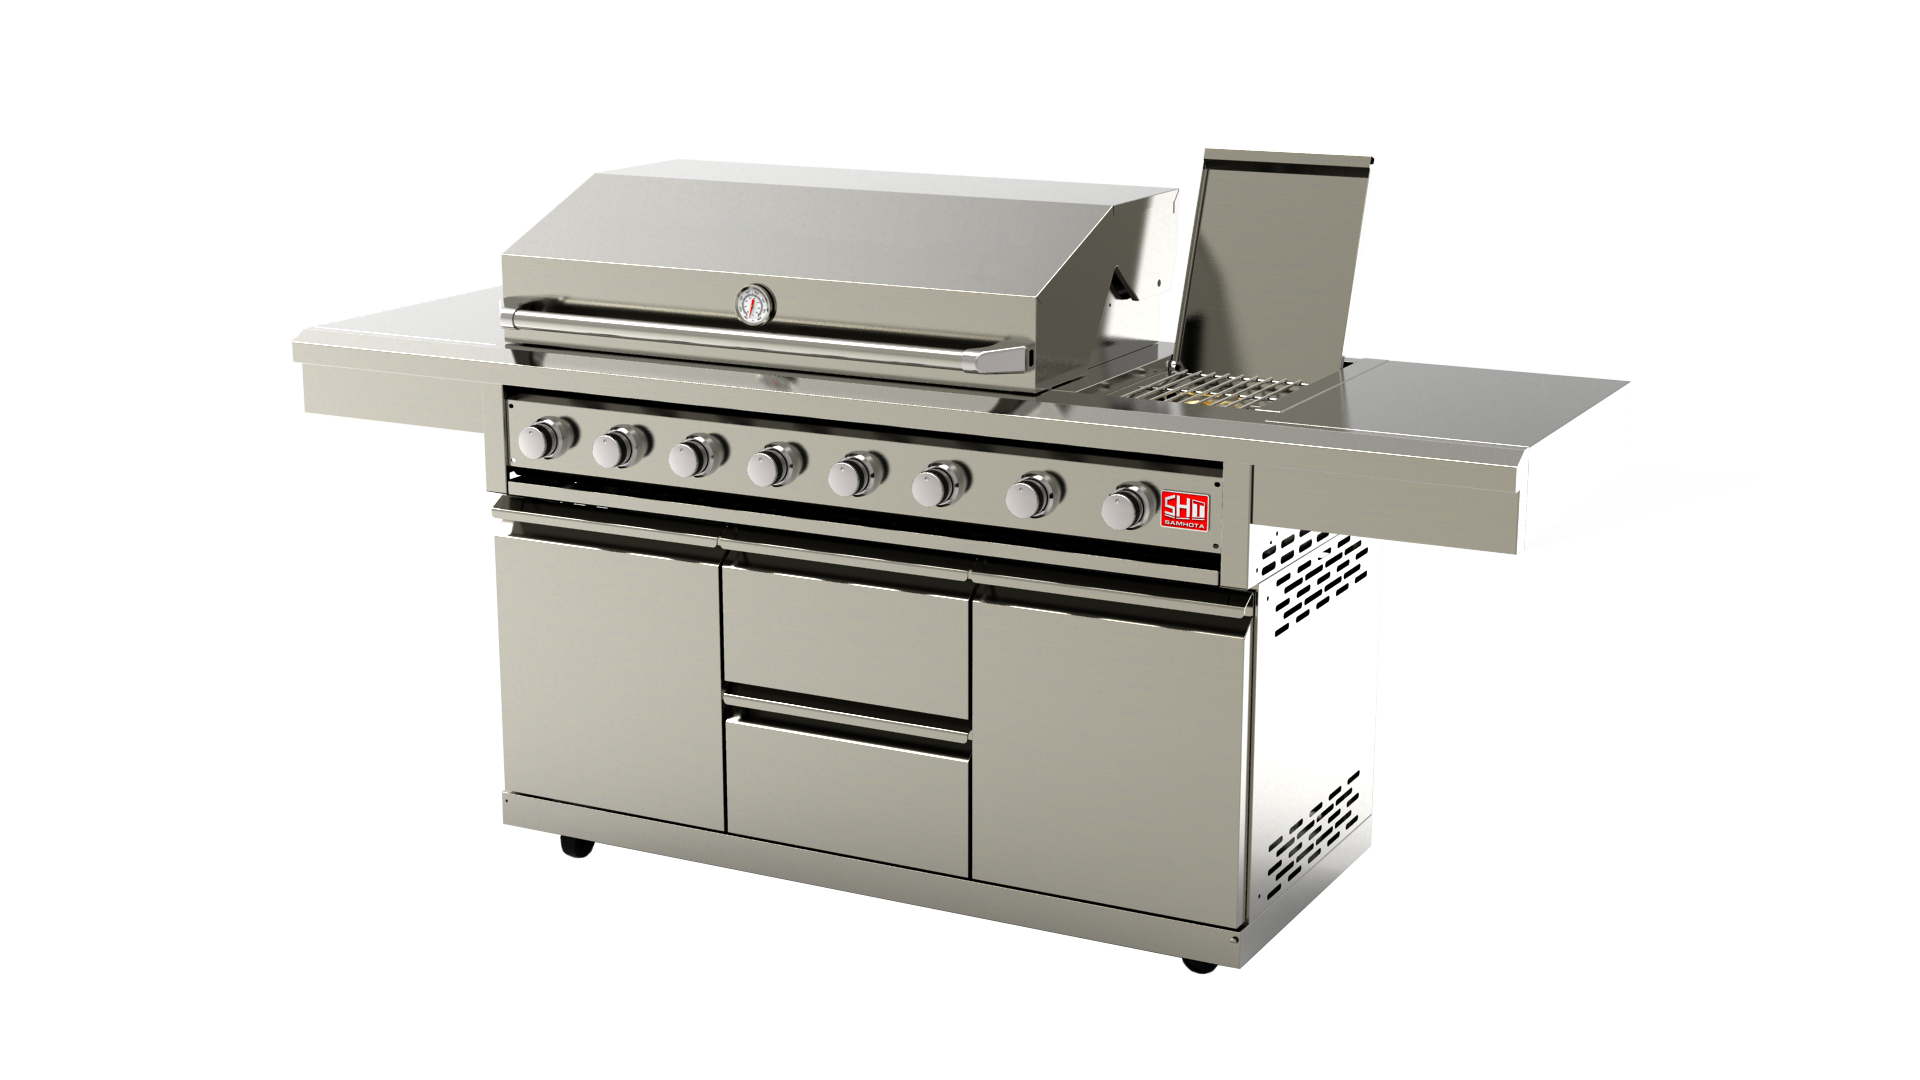 Enza King BBQ with Drawer!! - image SG008B-AD-5 on https://enzagroupsales.com.au